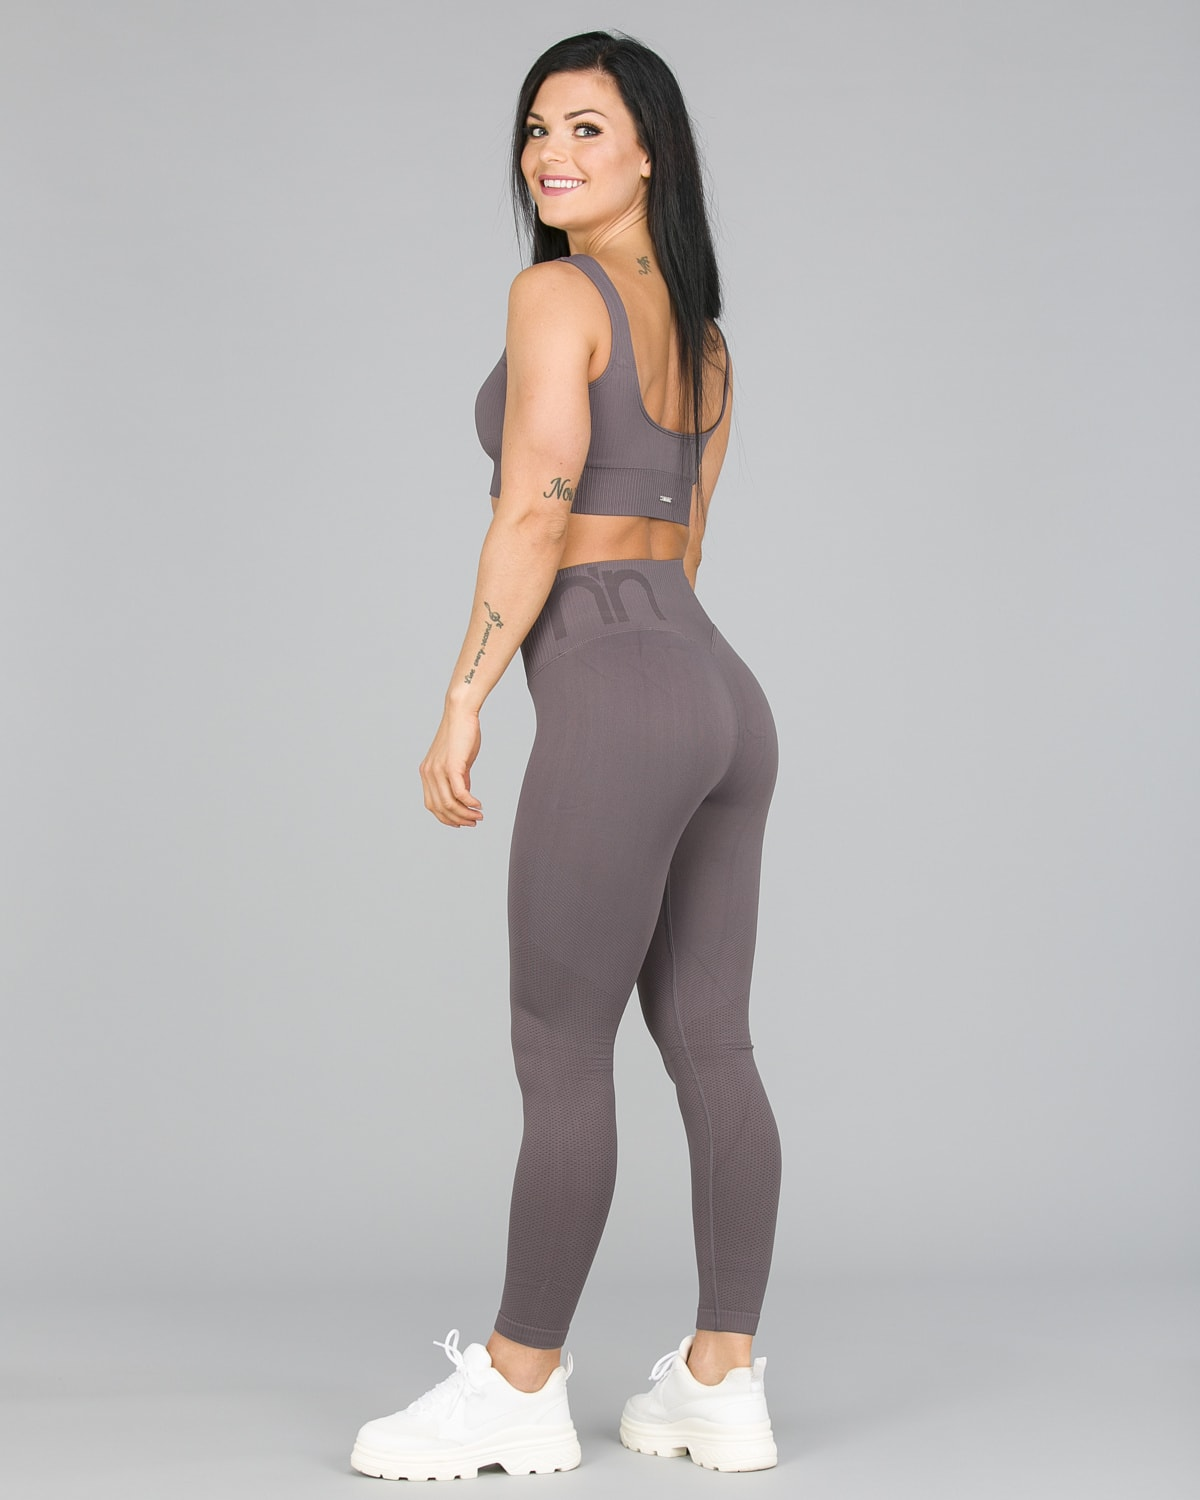 Aim'n Concrete Attention Seamless Tights3